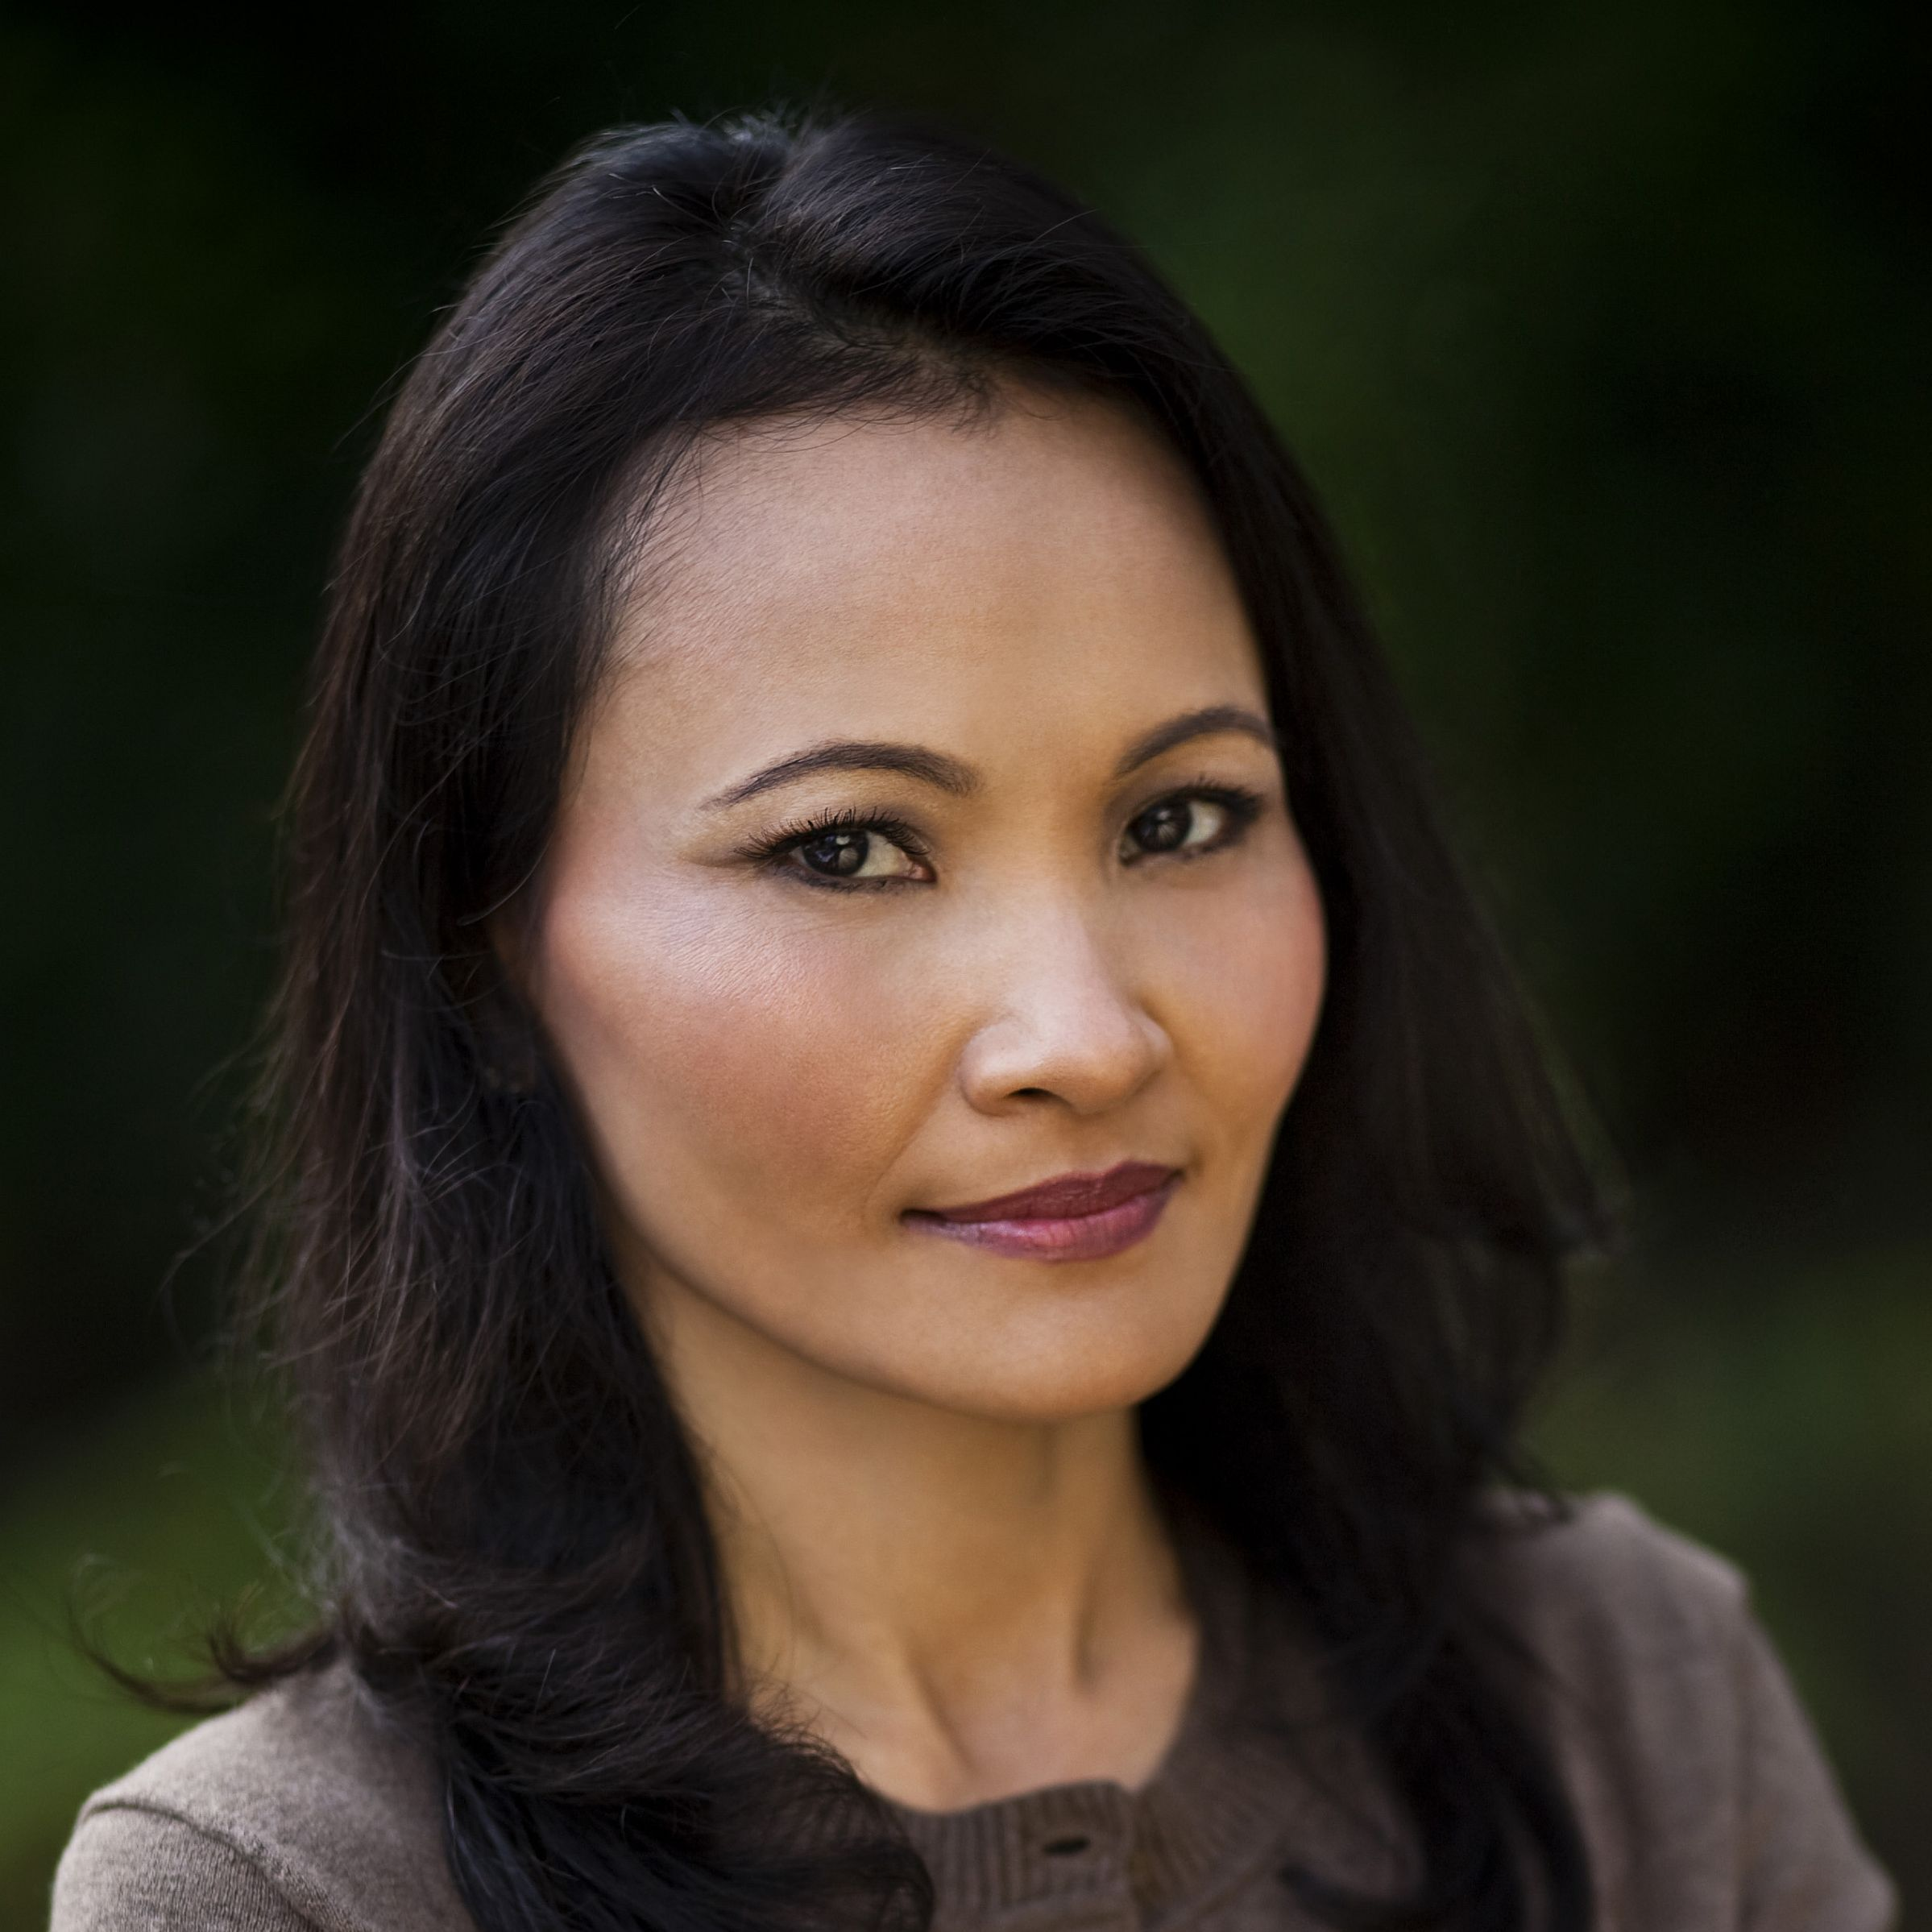 Vaddey Ratner survived four years of forced labor under the Khmer Rouge, and has since come to the United States, where she studied Southeast Asian history and literature at Cornell University.